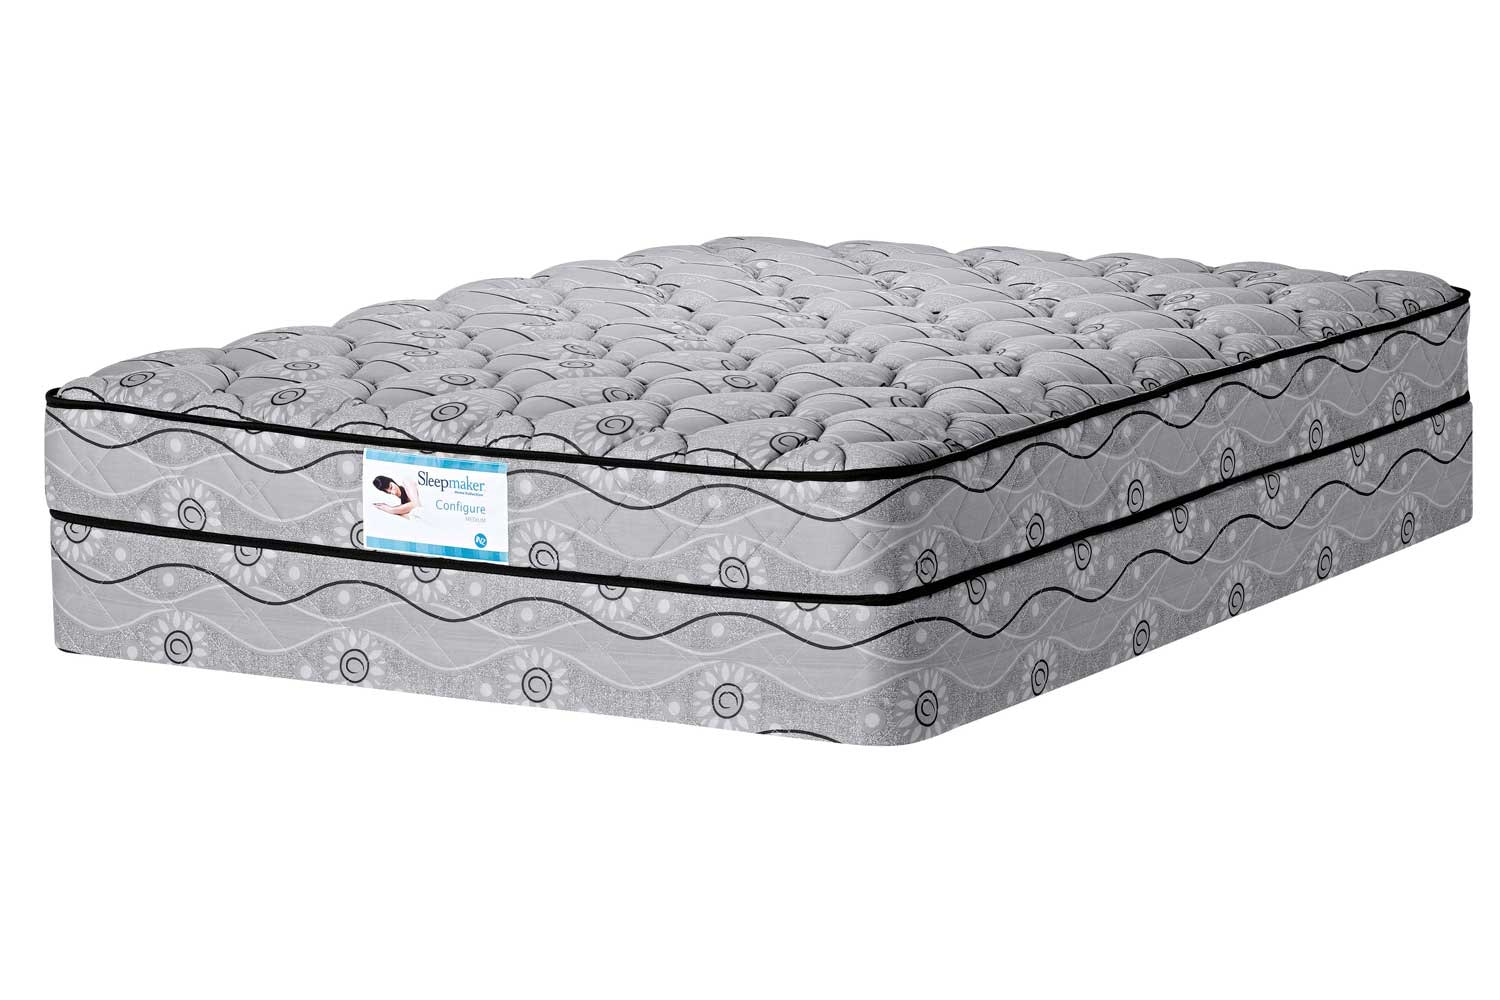 Sleepmaker Slumber Support Medium